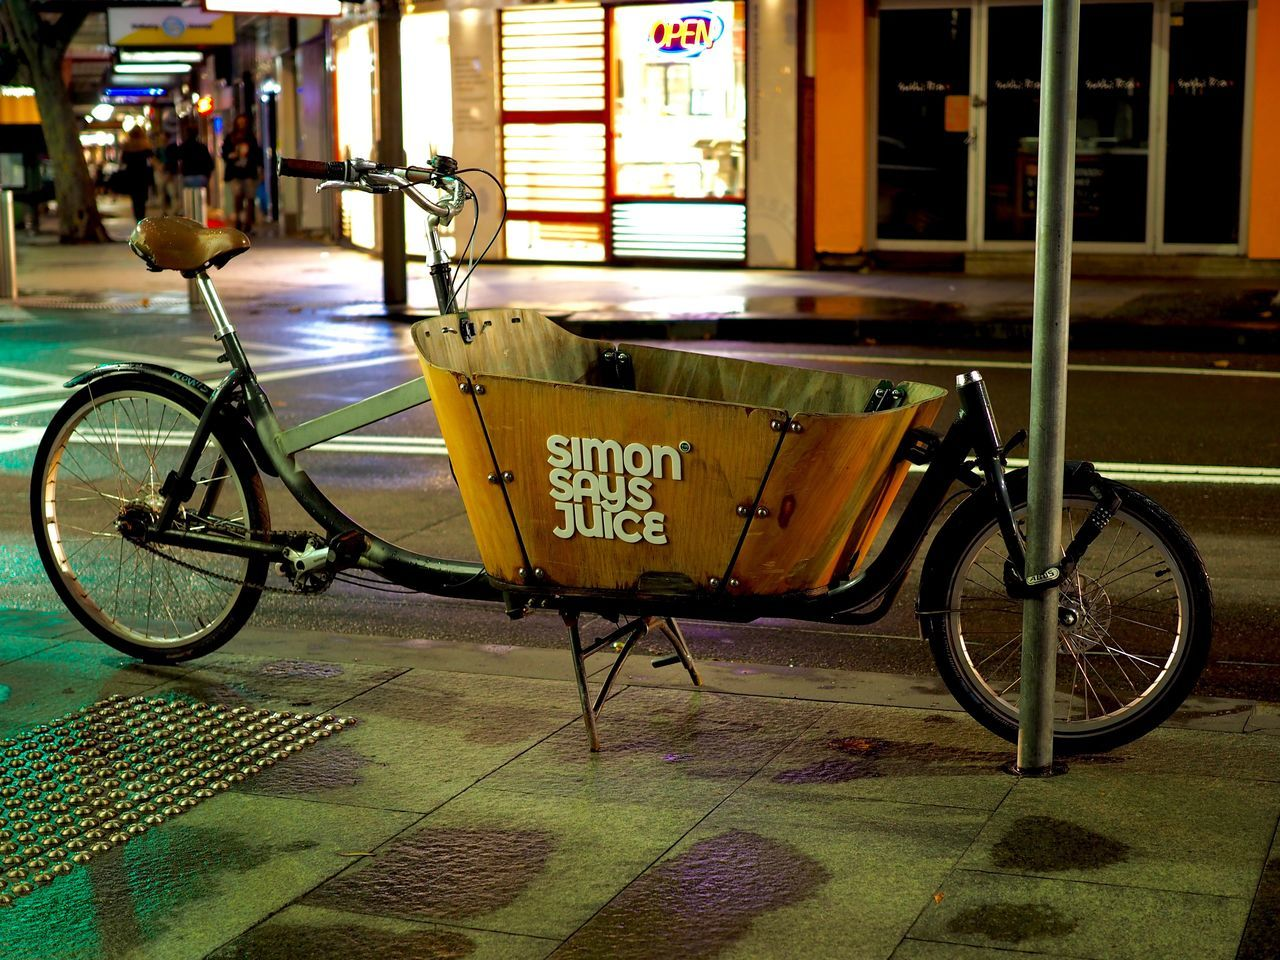 bicycle, mode of transport, text, transportation, land vehicle, stationary, city, no people, outdoors, day